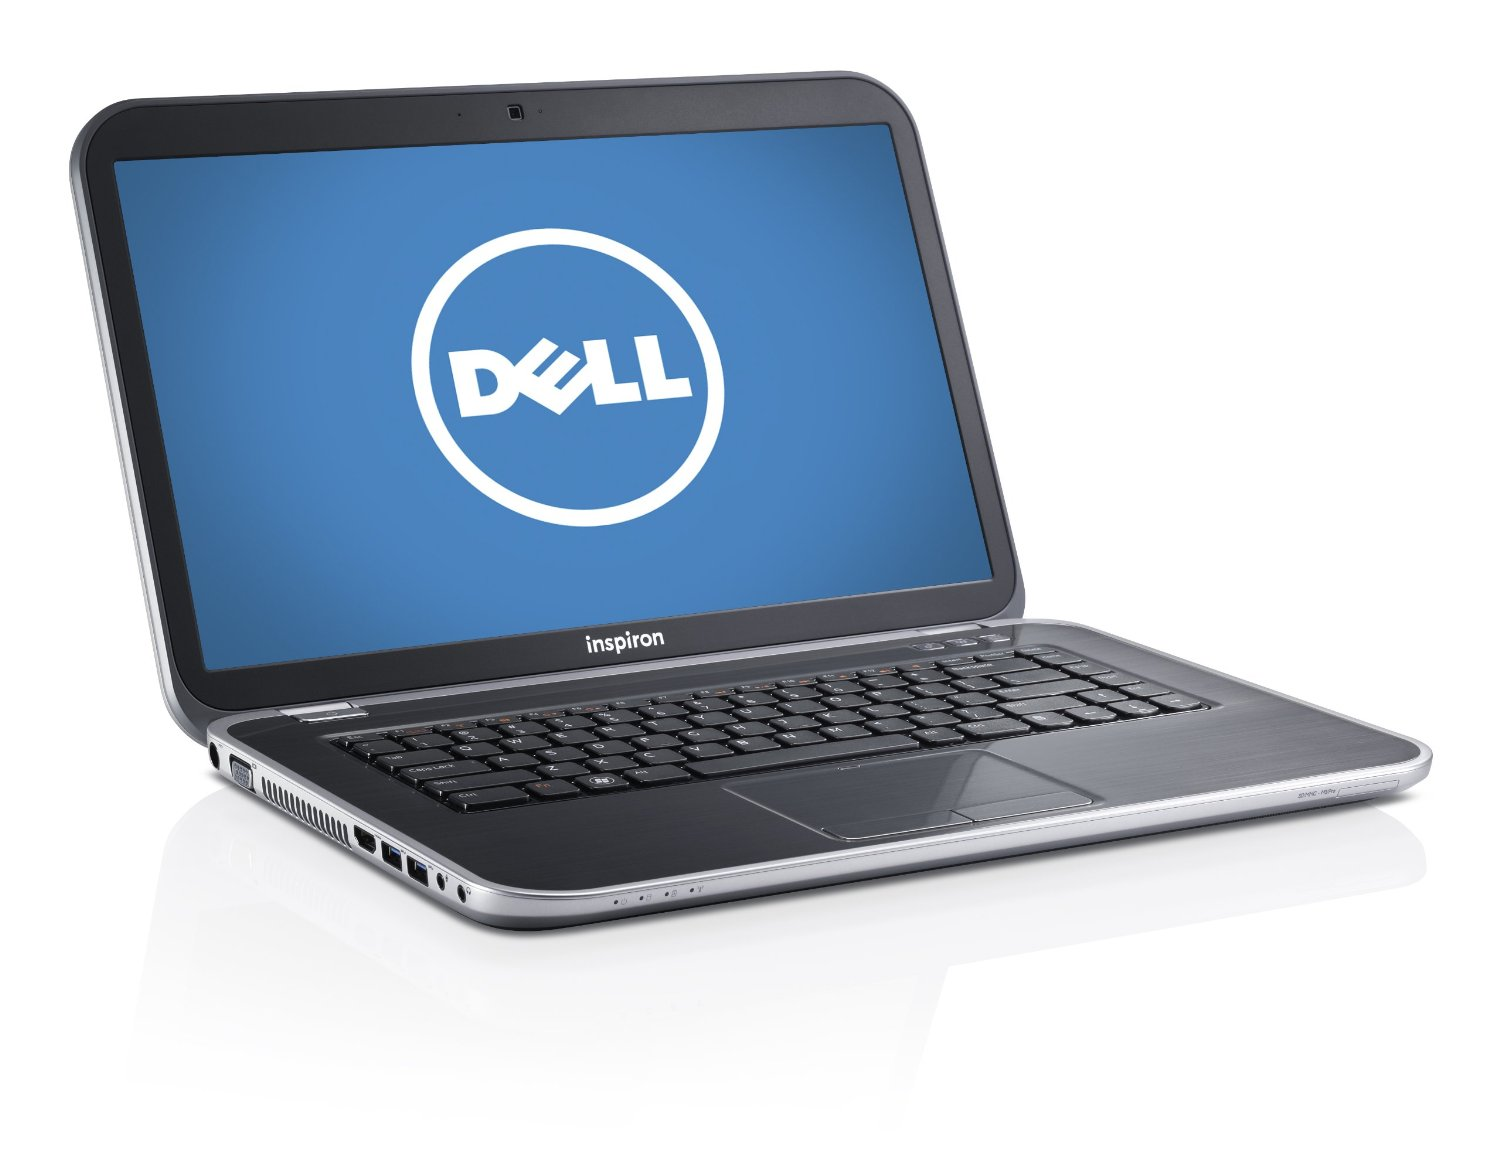 Dell - Laptop reviews